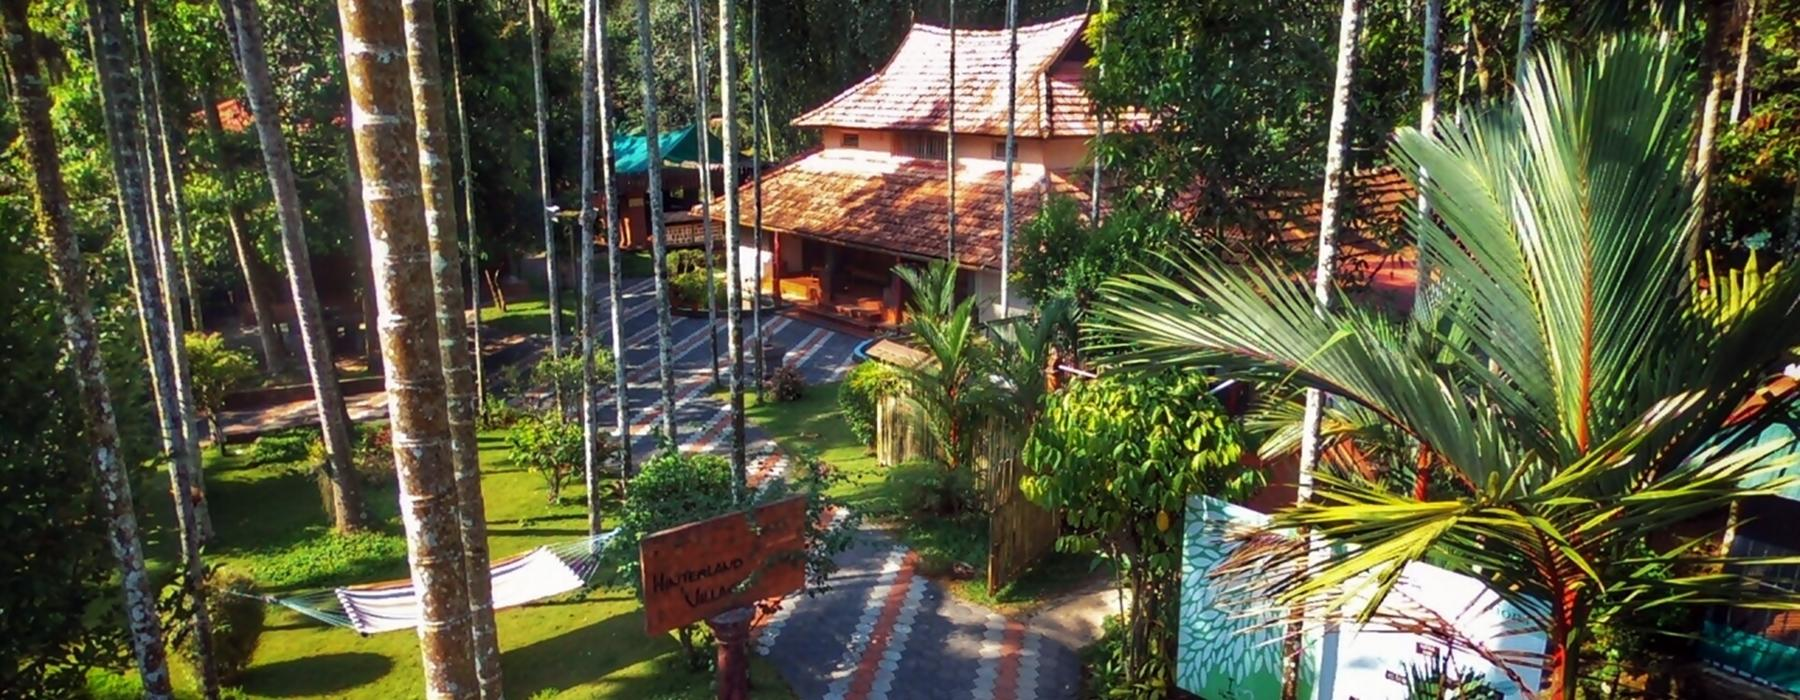 Hinterland Village Resort